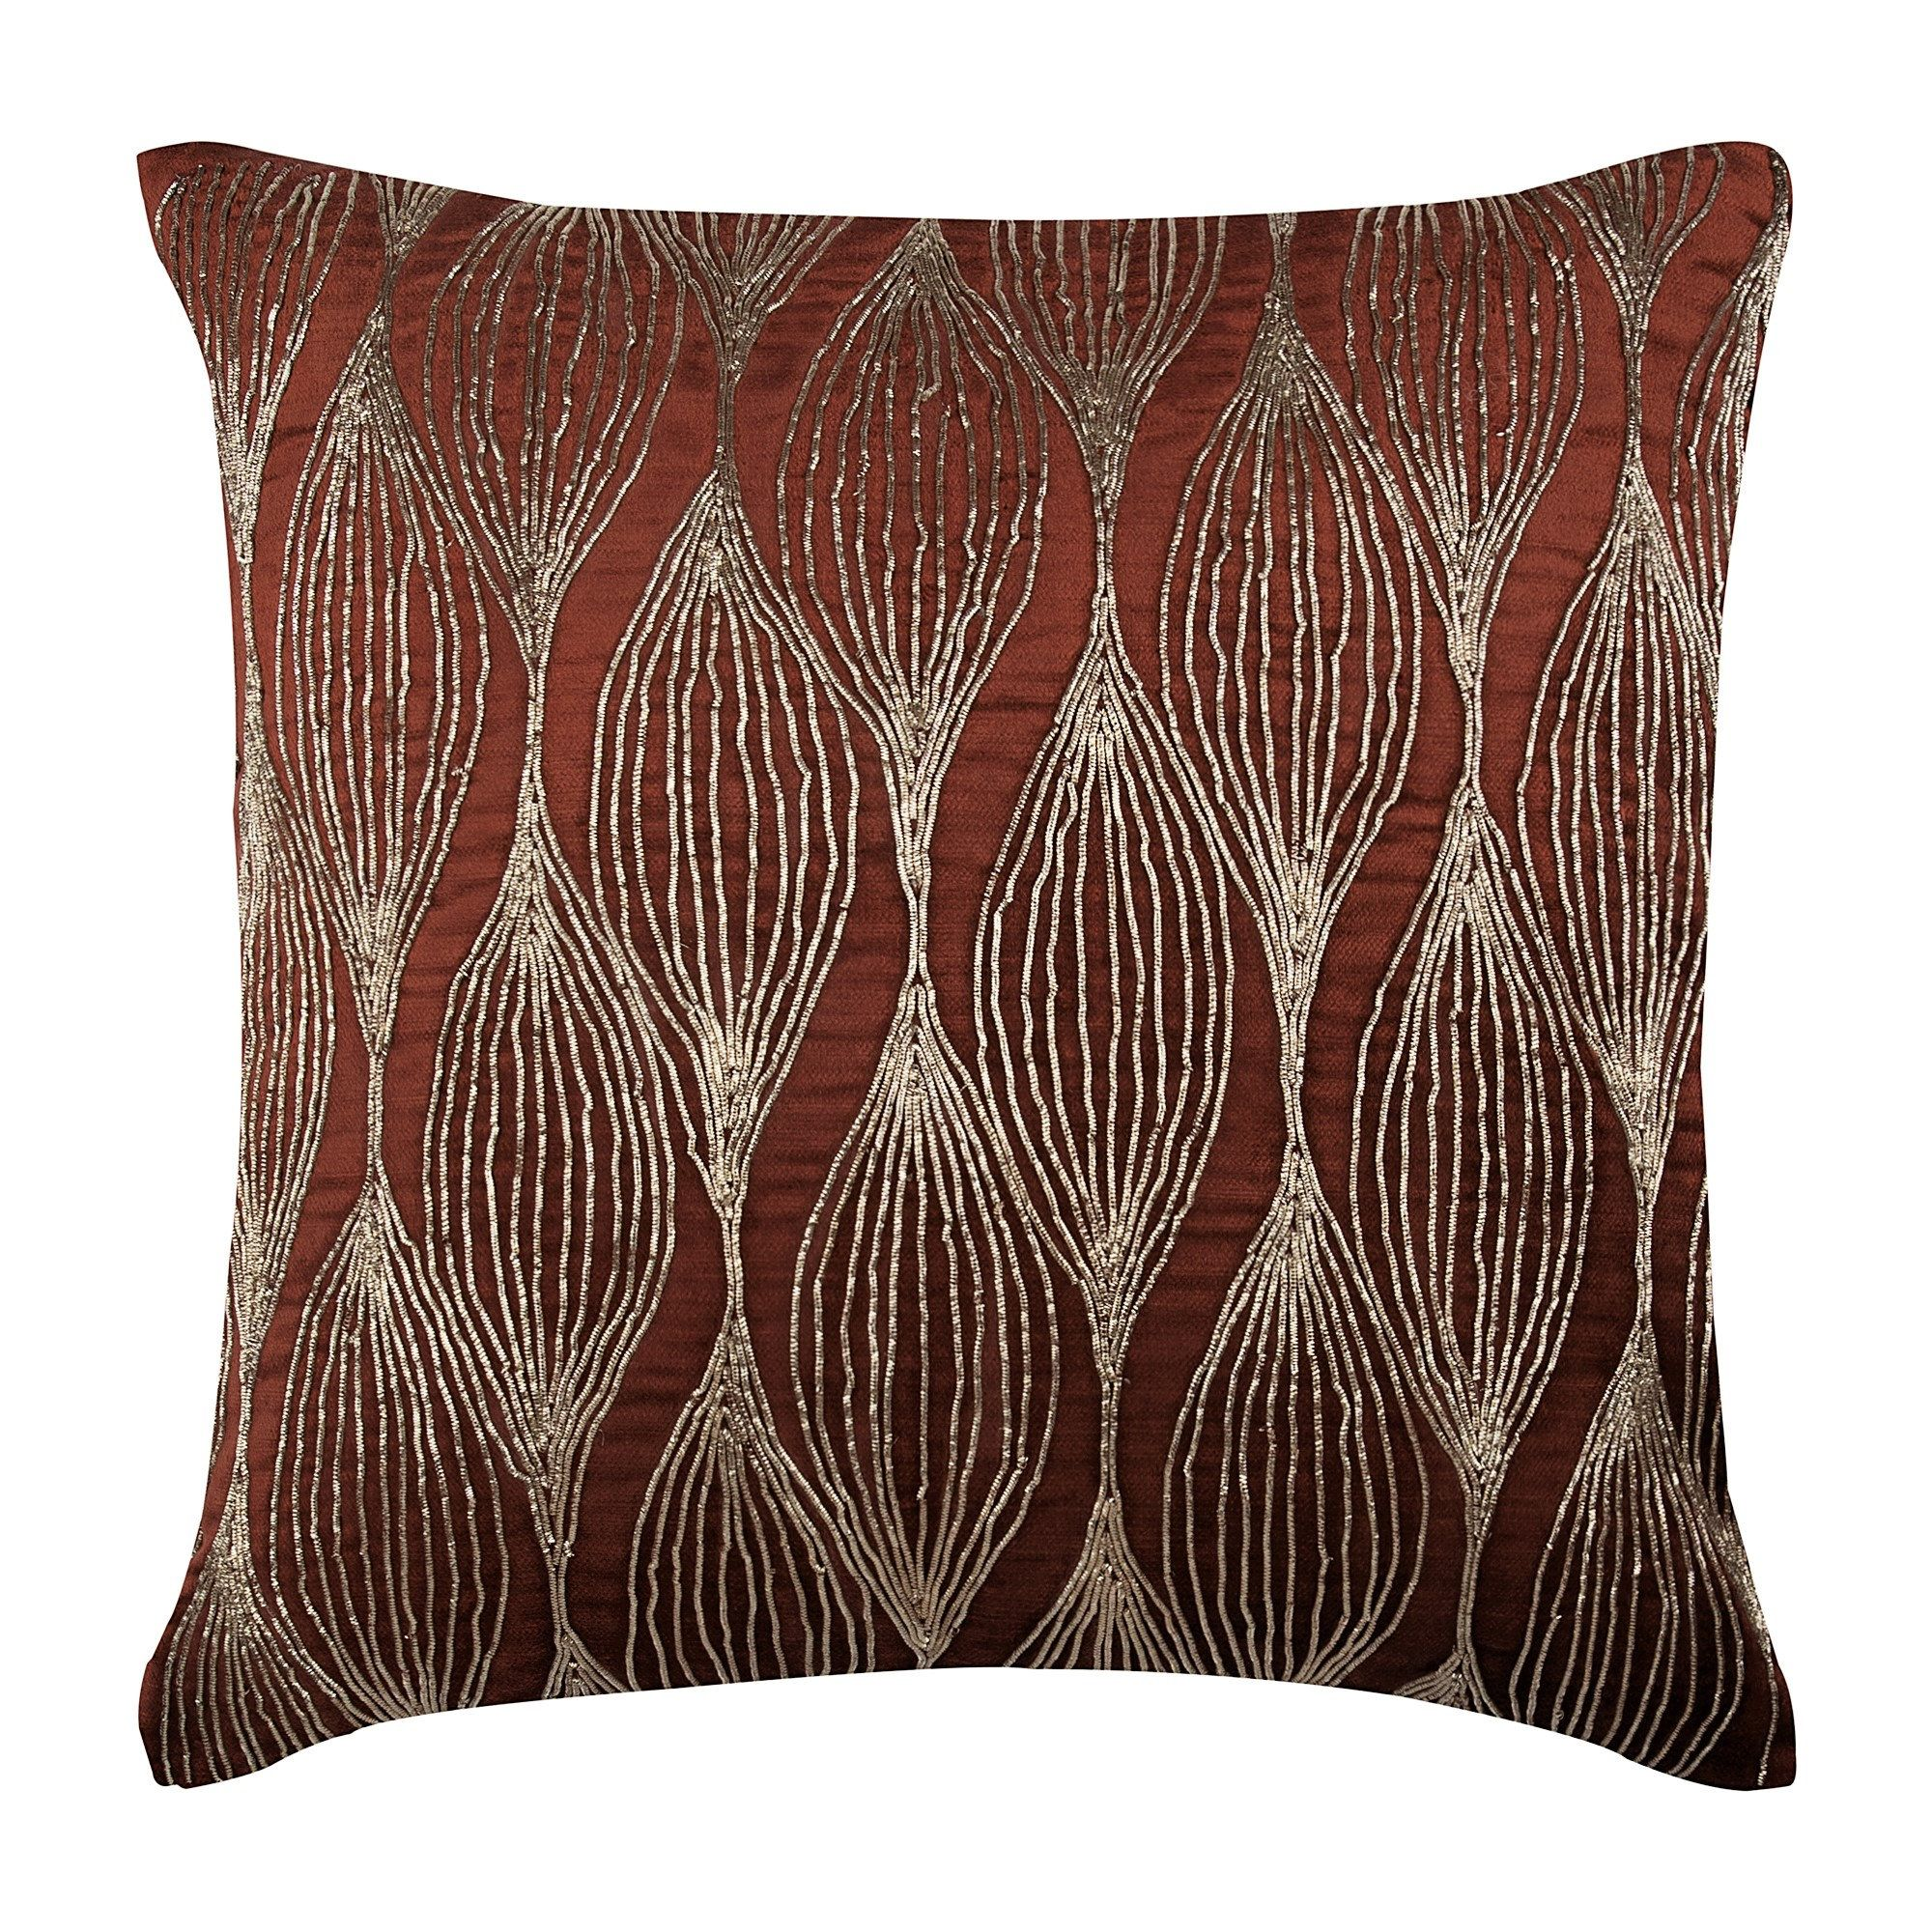 Decorative Toss Pillow Cover 16x16